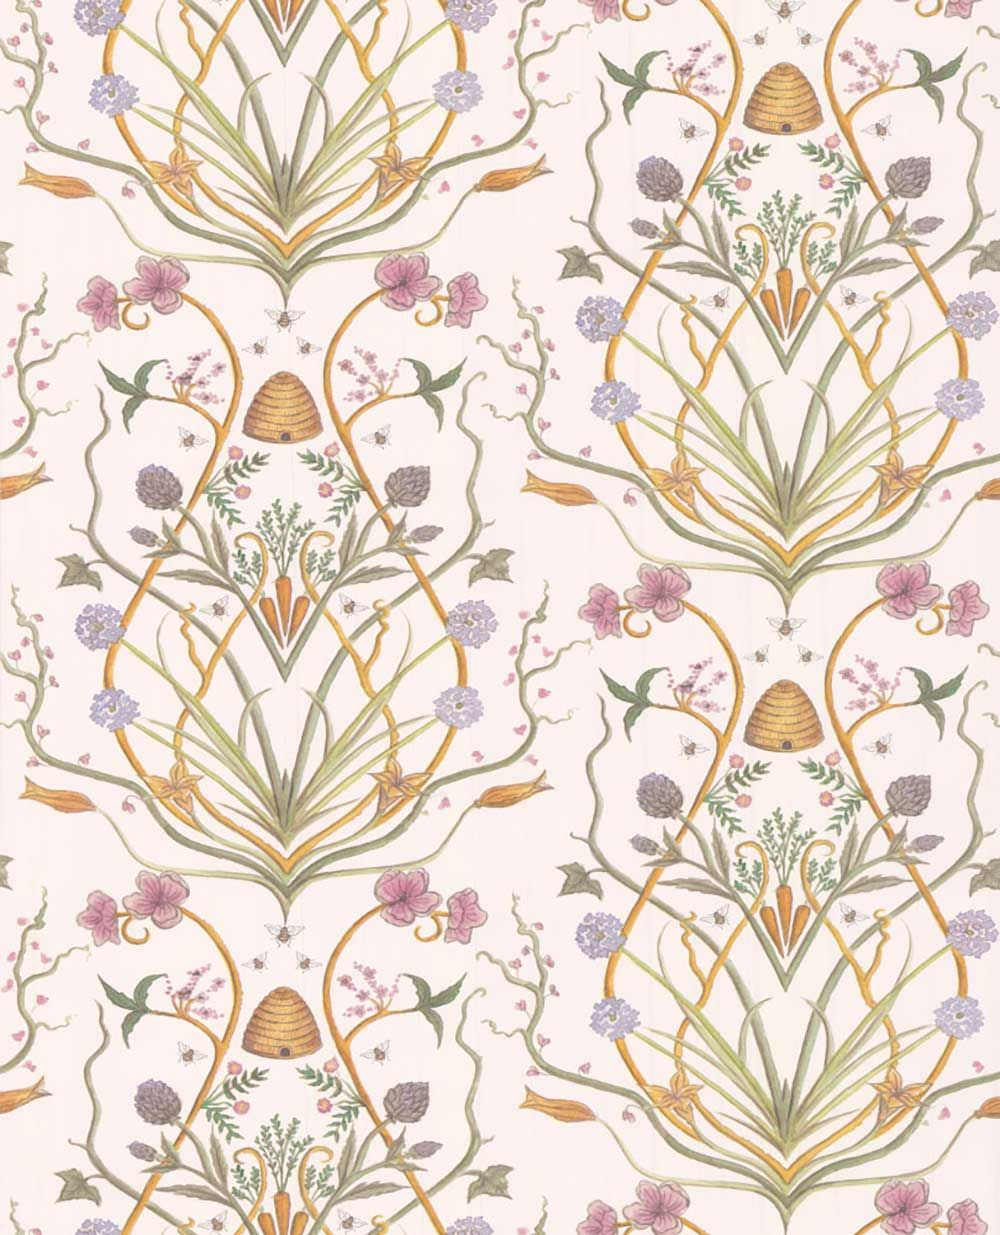 Potagerie By The Chateau By Angel Strawbridge Multi